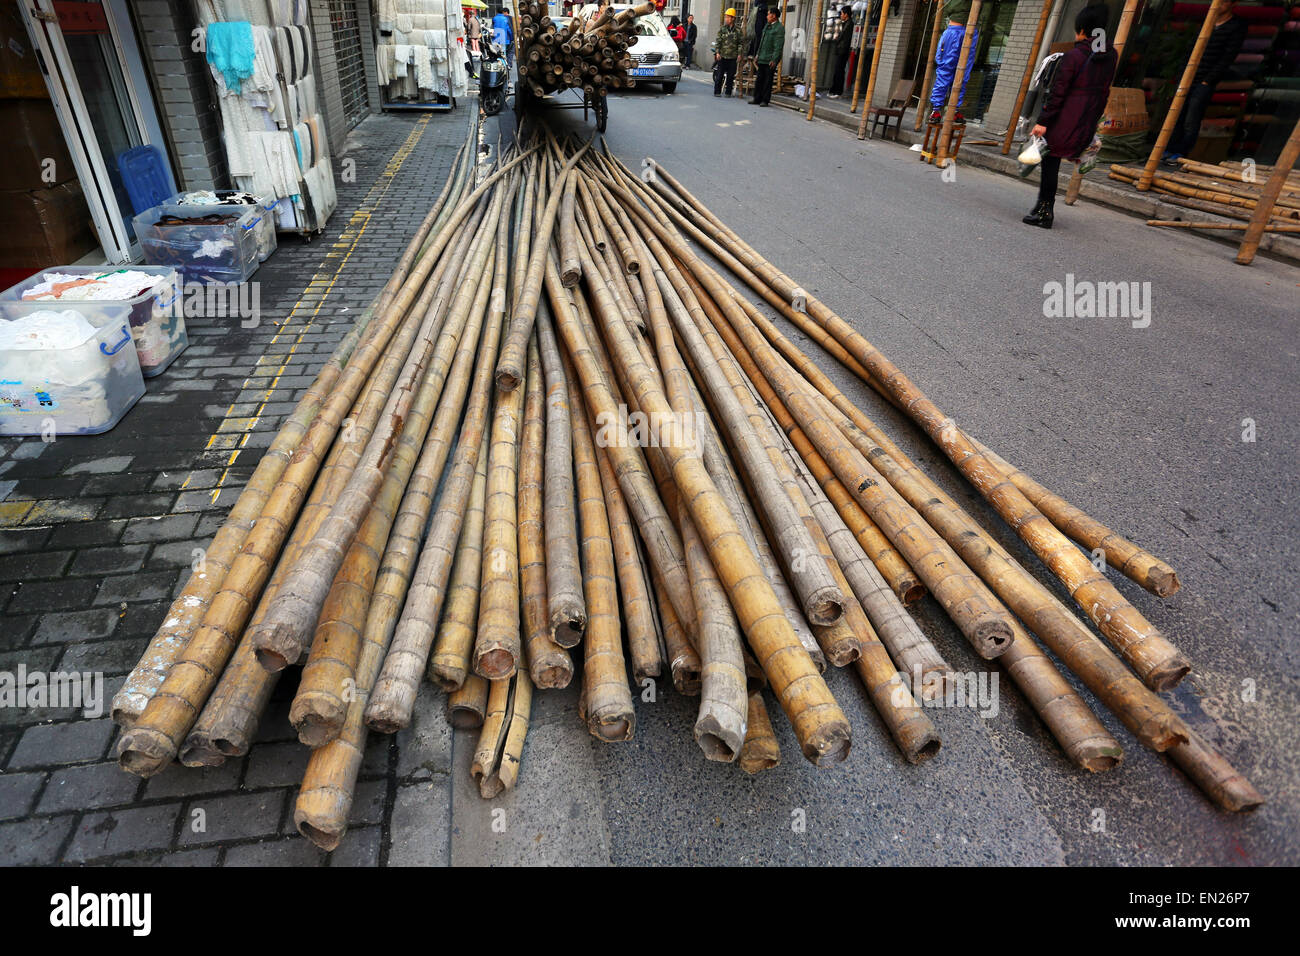 Bamboo scaffolding poles used for building and construction, Shanghai, China - Stock Image